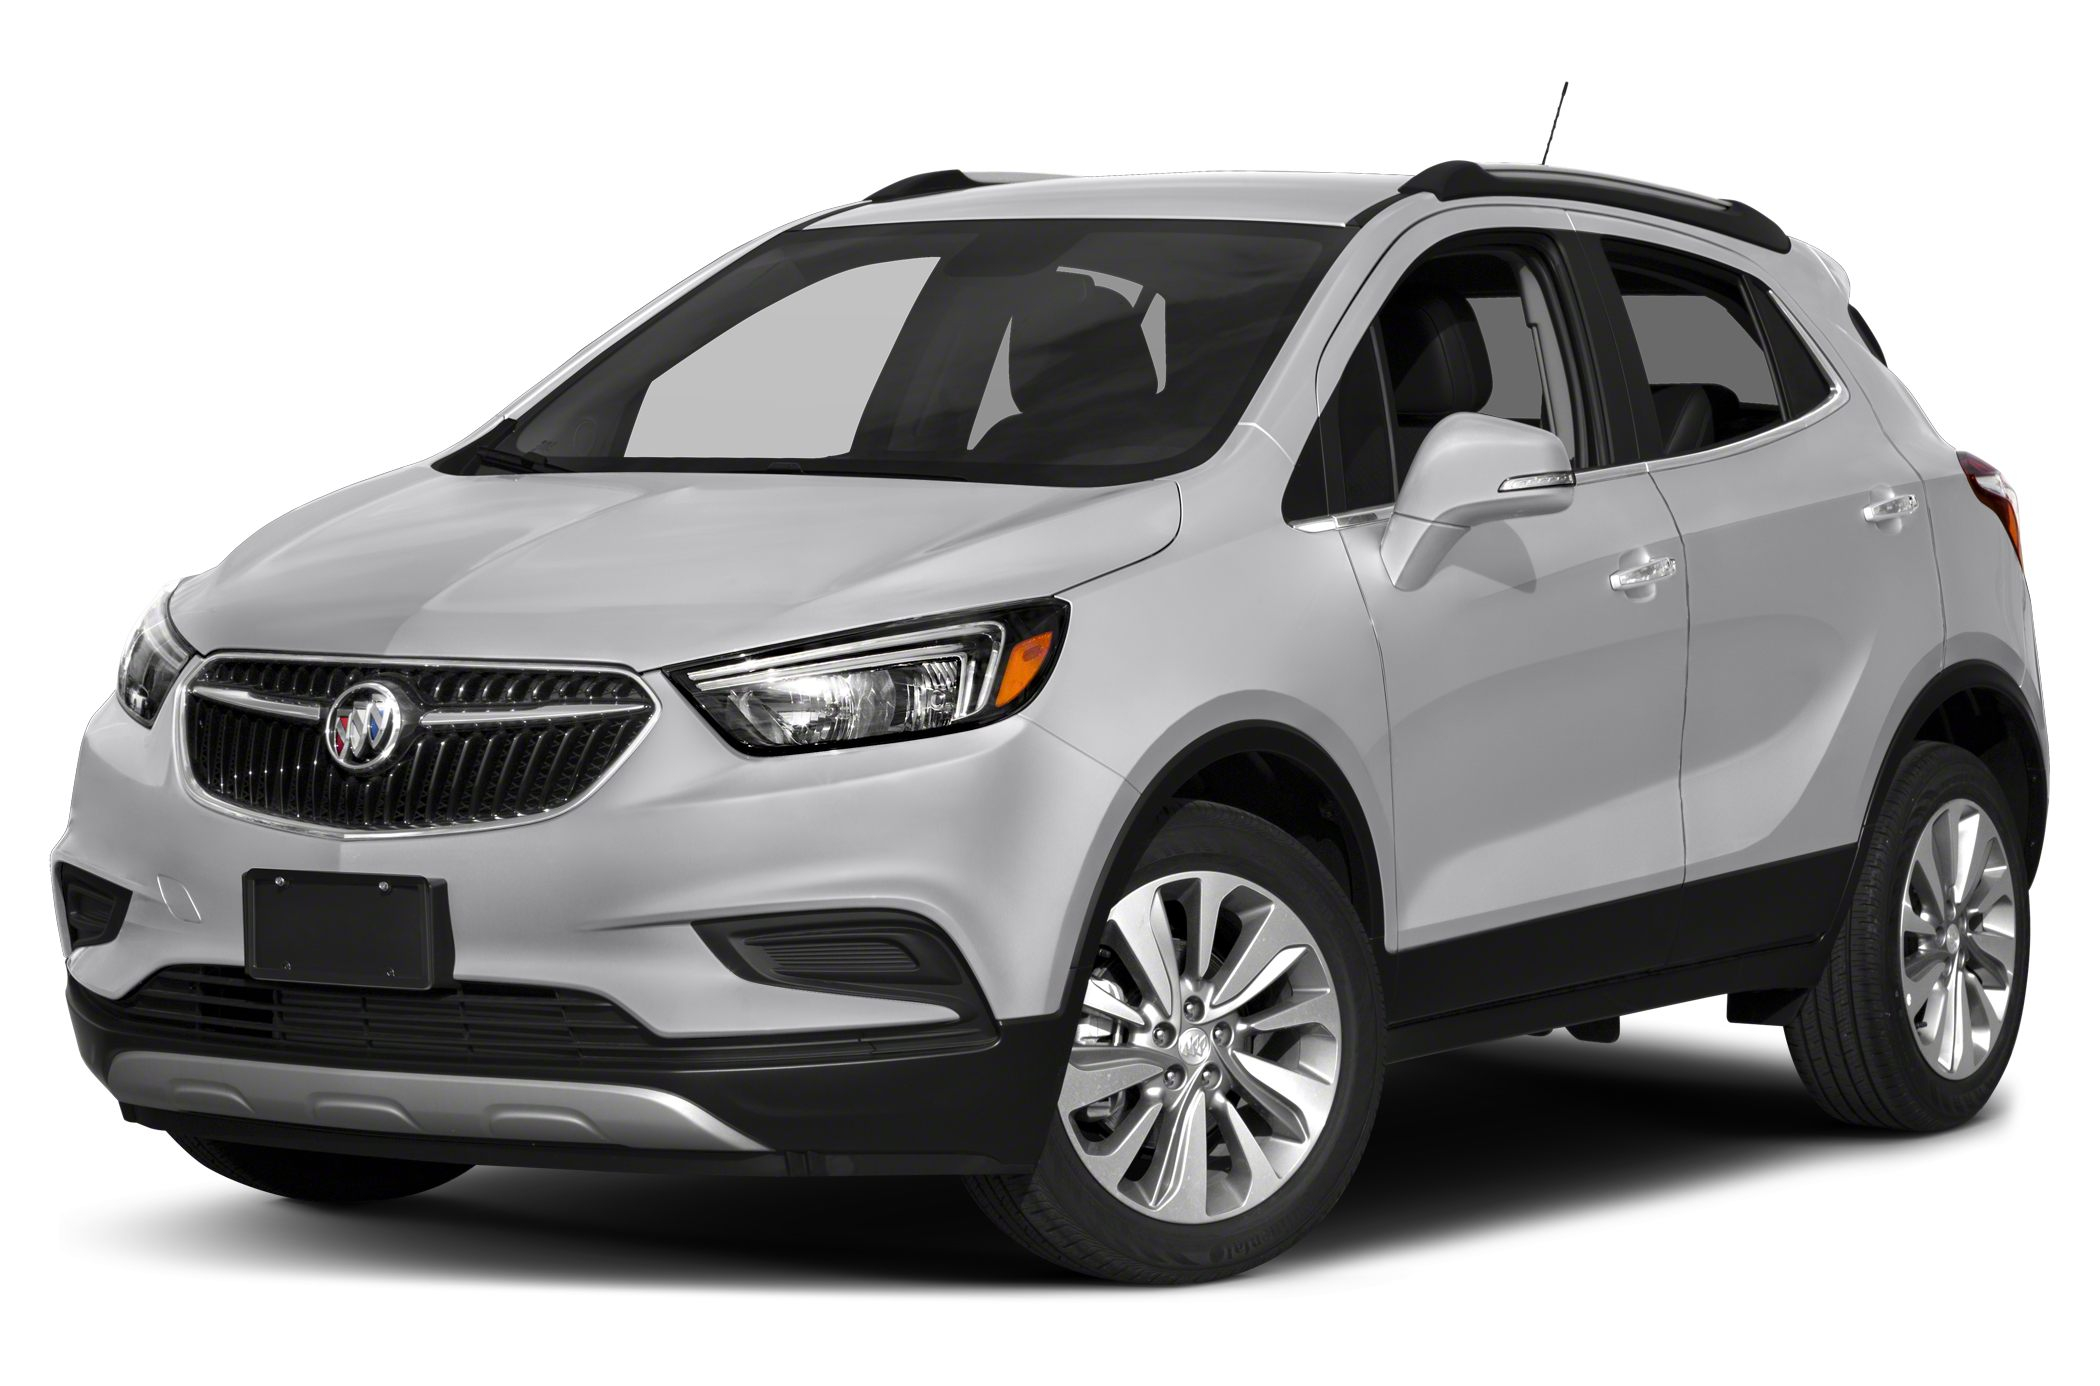 2019 Buick Encore Essence Front-Wheel Drive Specs And Prices New 2021 Buick Encore Essence Engine, Awd, Msrp